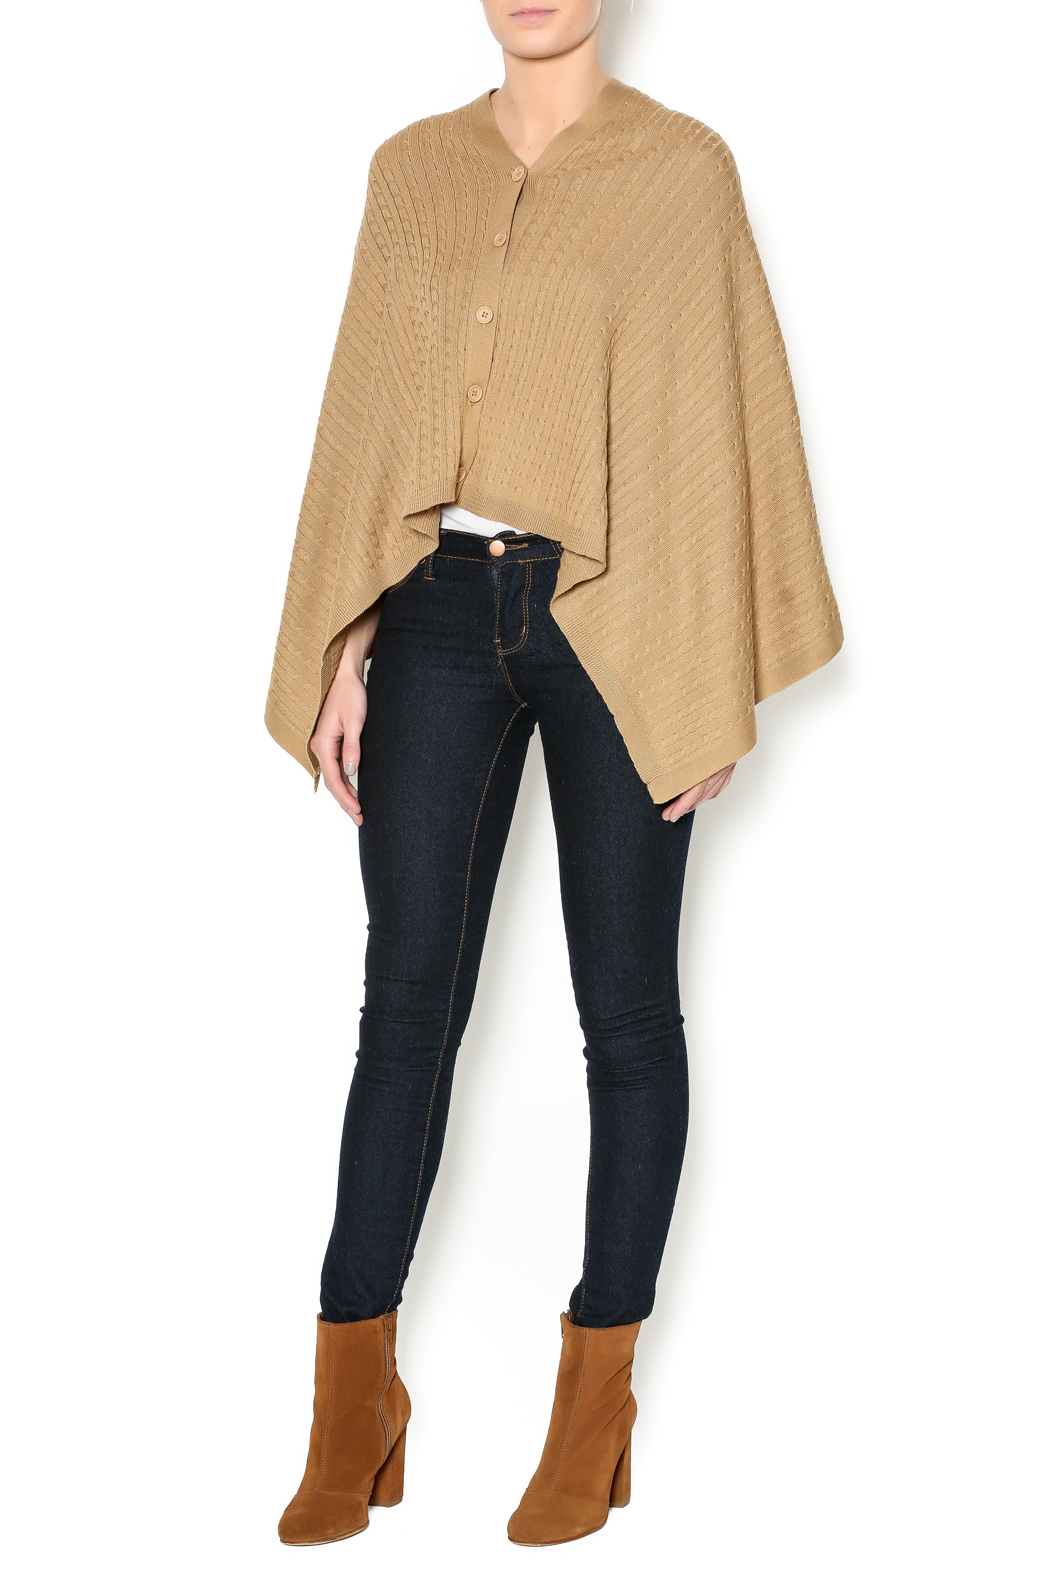 Patricia's Presents Camel Three Way Top - Front Full Image